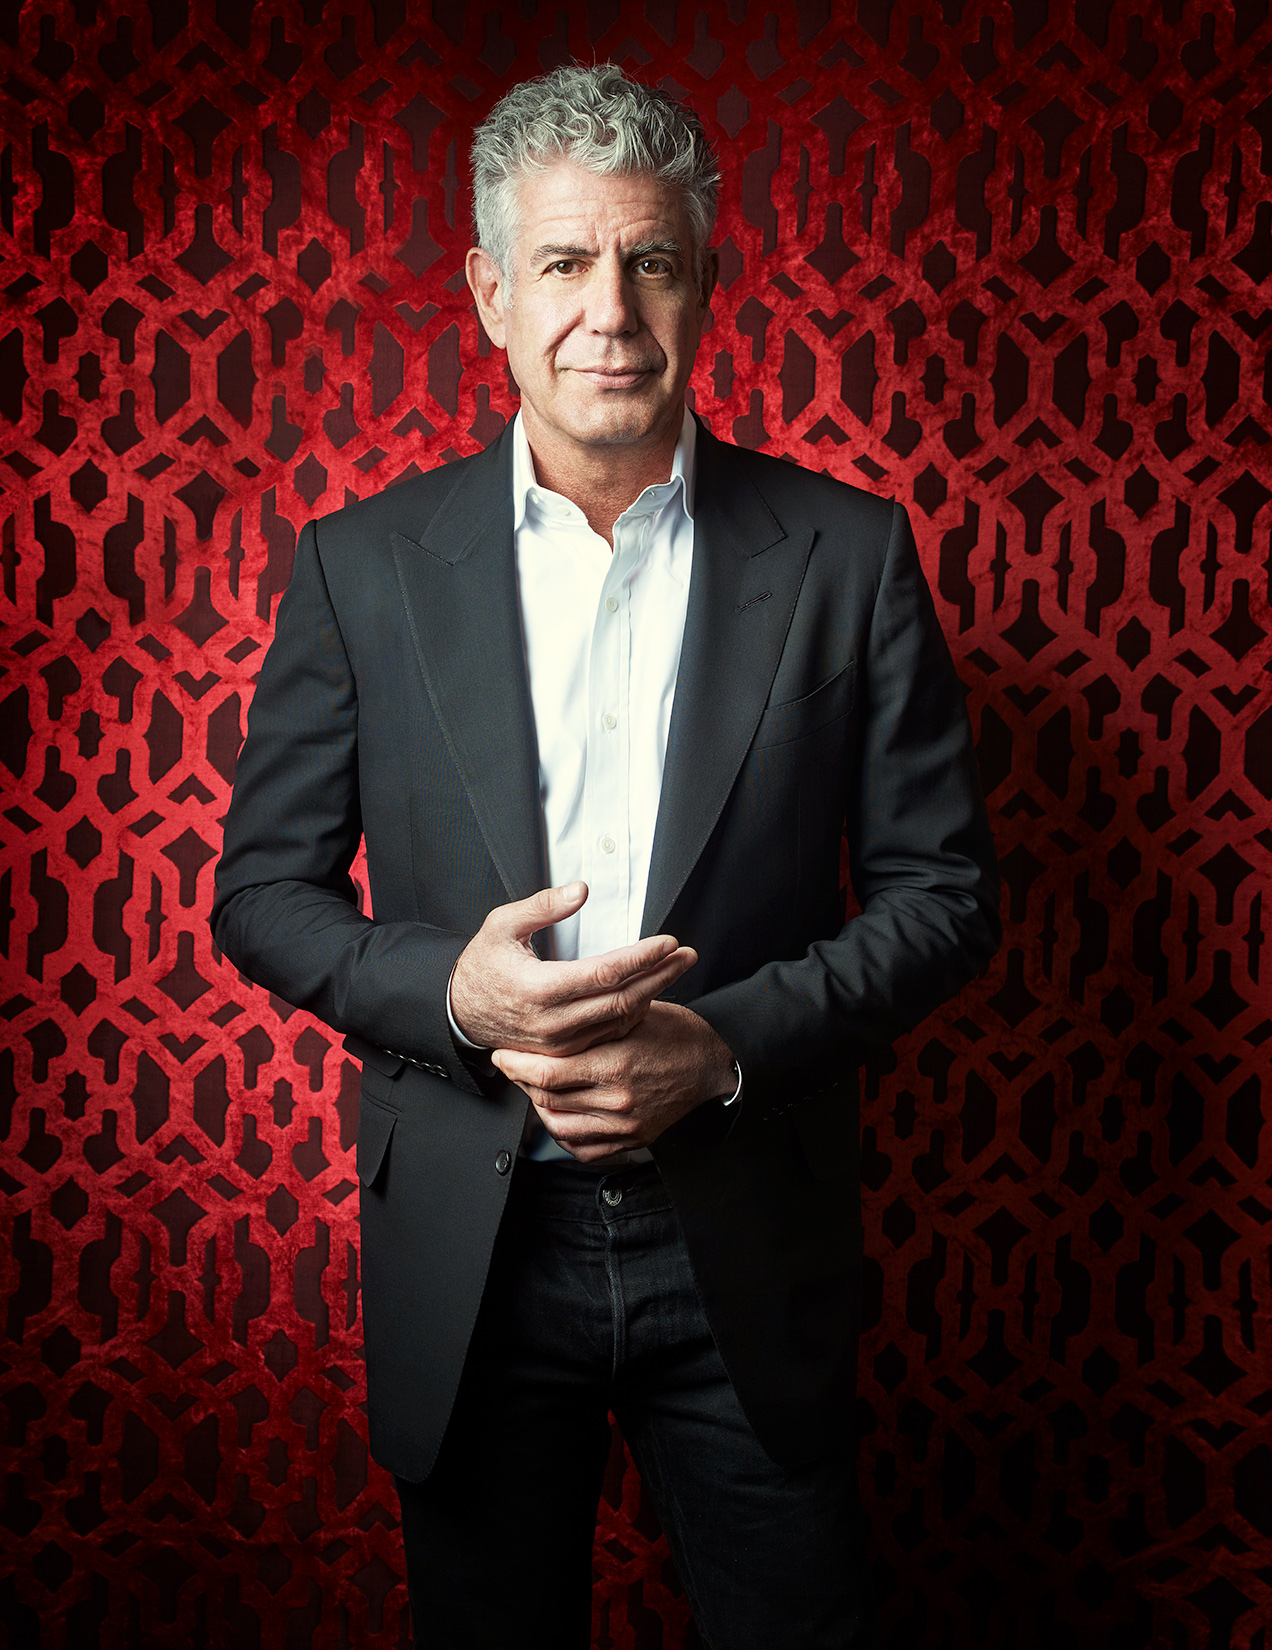 Anthony-Bourdain-by-Robert-Ascroft-04